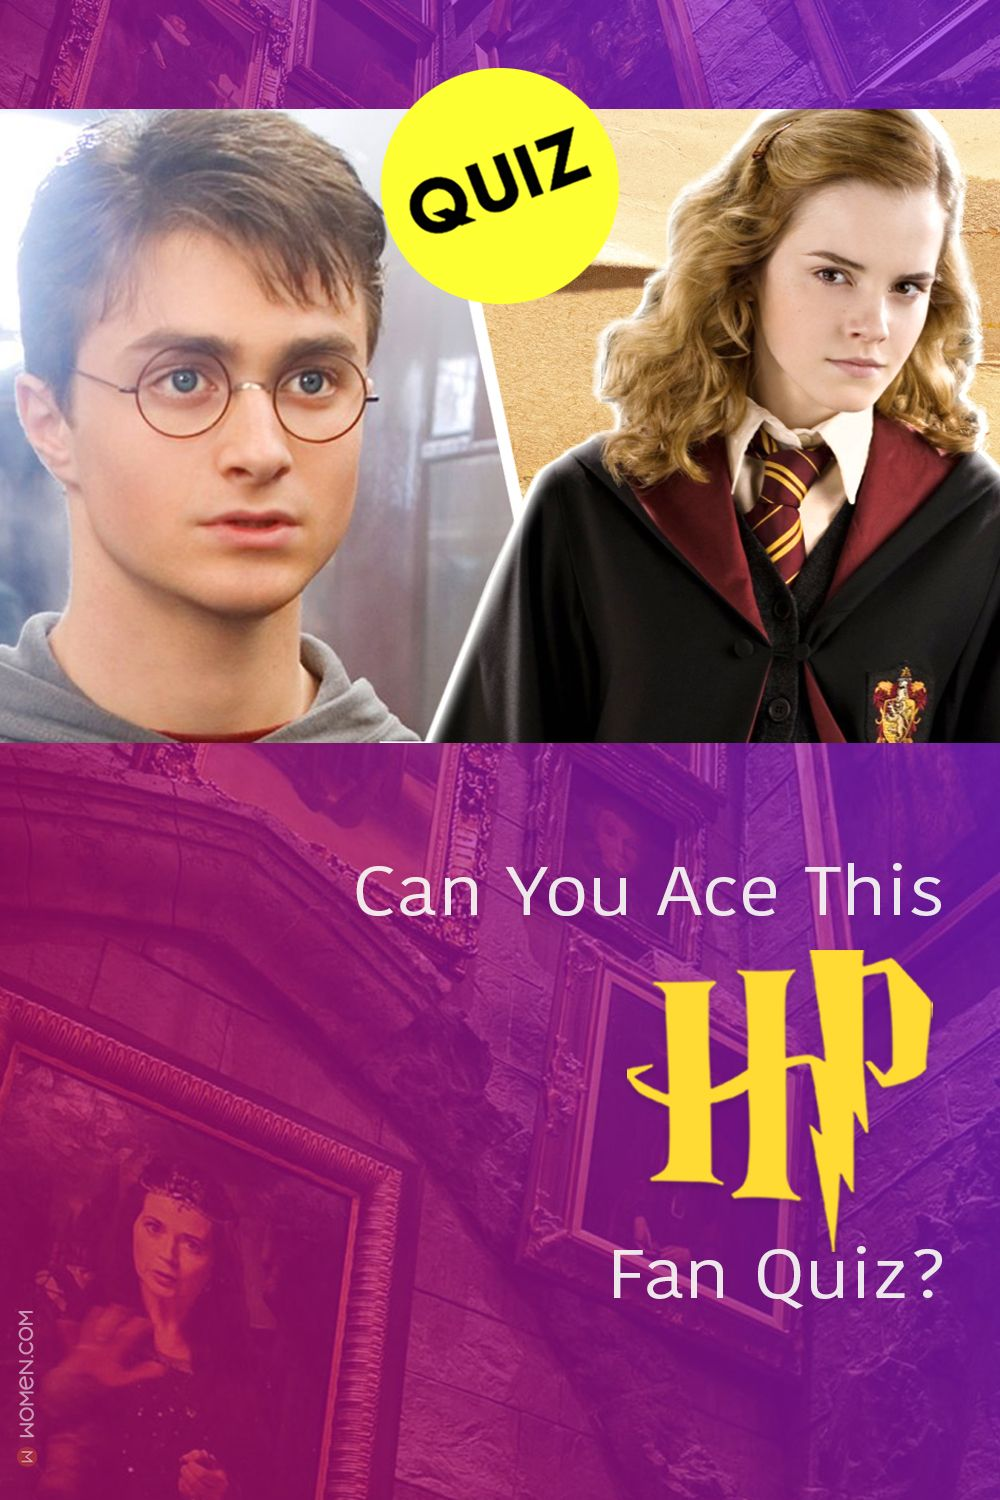 Hogwarts Quiz Can You Ace This Harry Potter Fan Quiz Hogwarts Quiz Harry Potter Quiz Harry Potter Questions